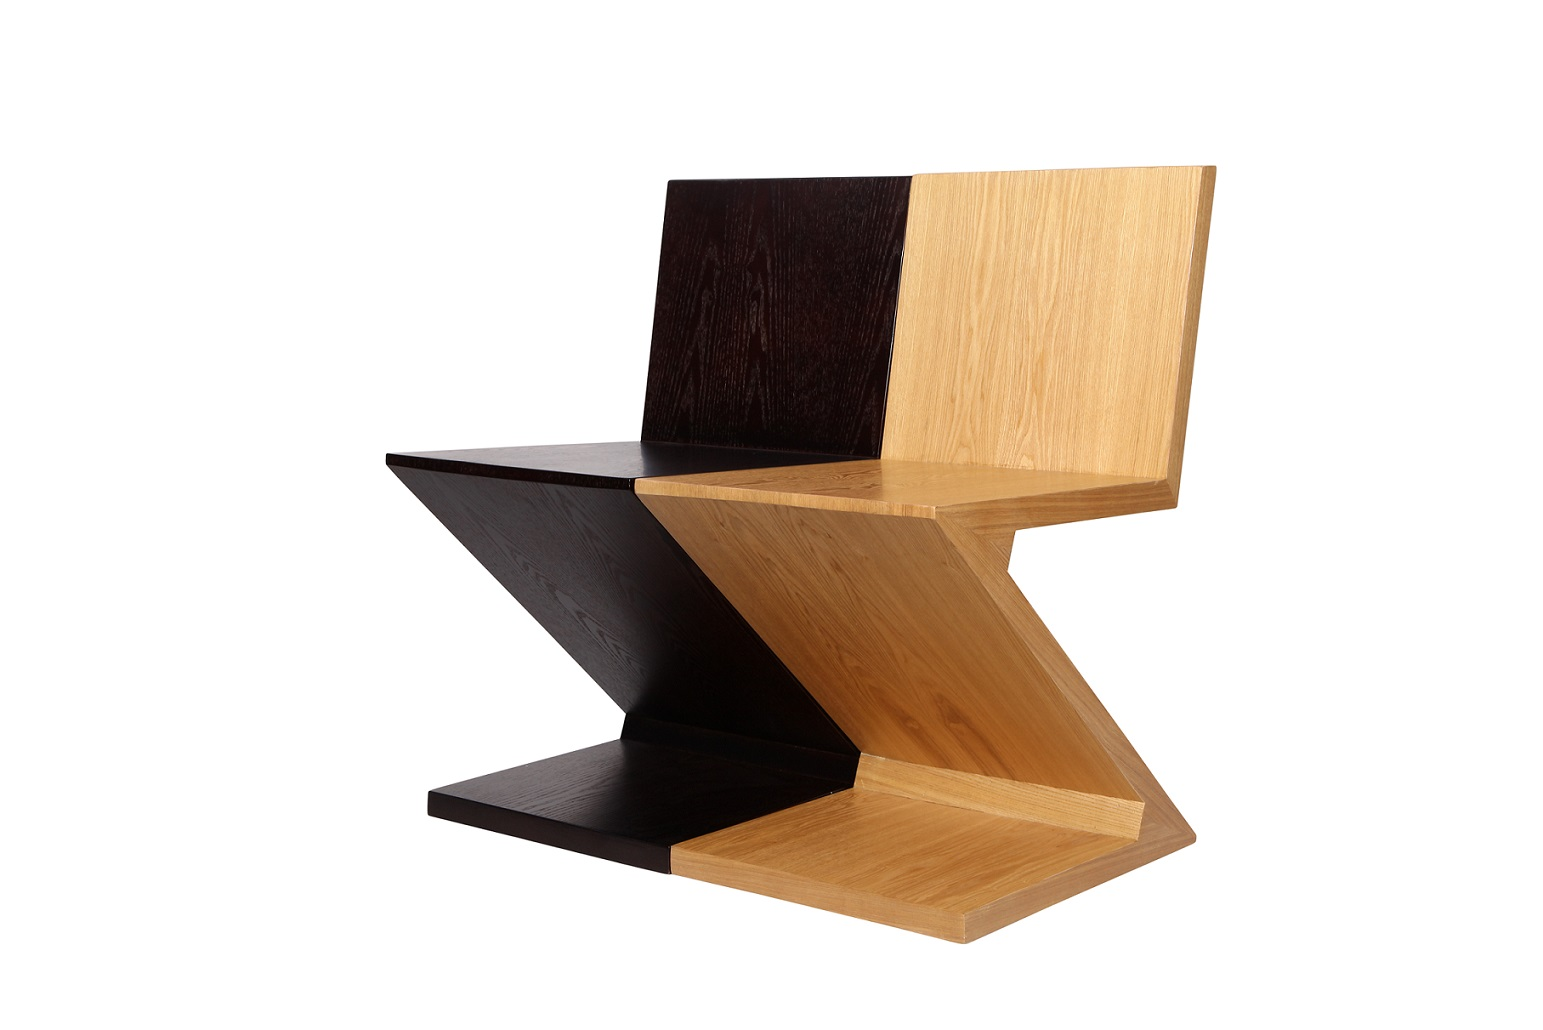 Chaise Zig Zag Dimensions Shop Rietveld Zig Zag Chair For Only 1239